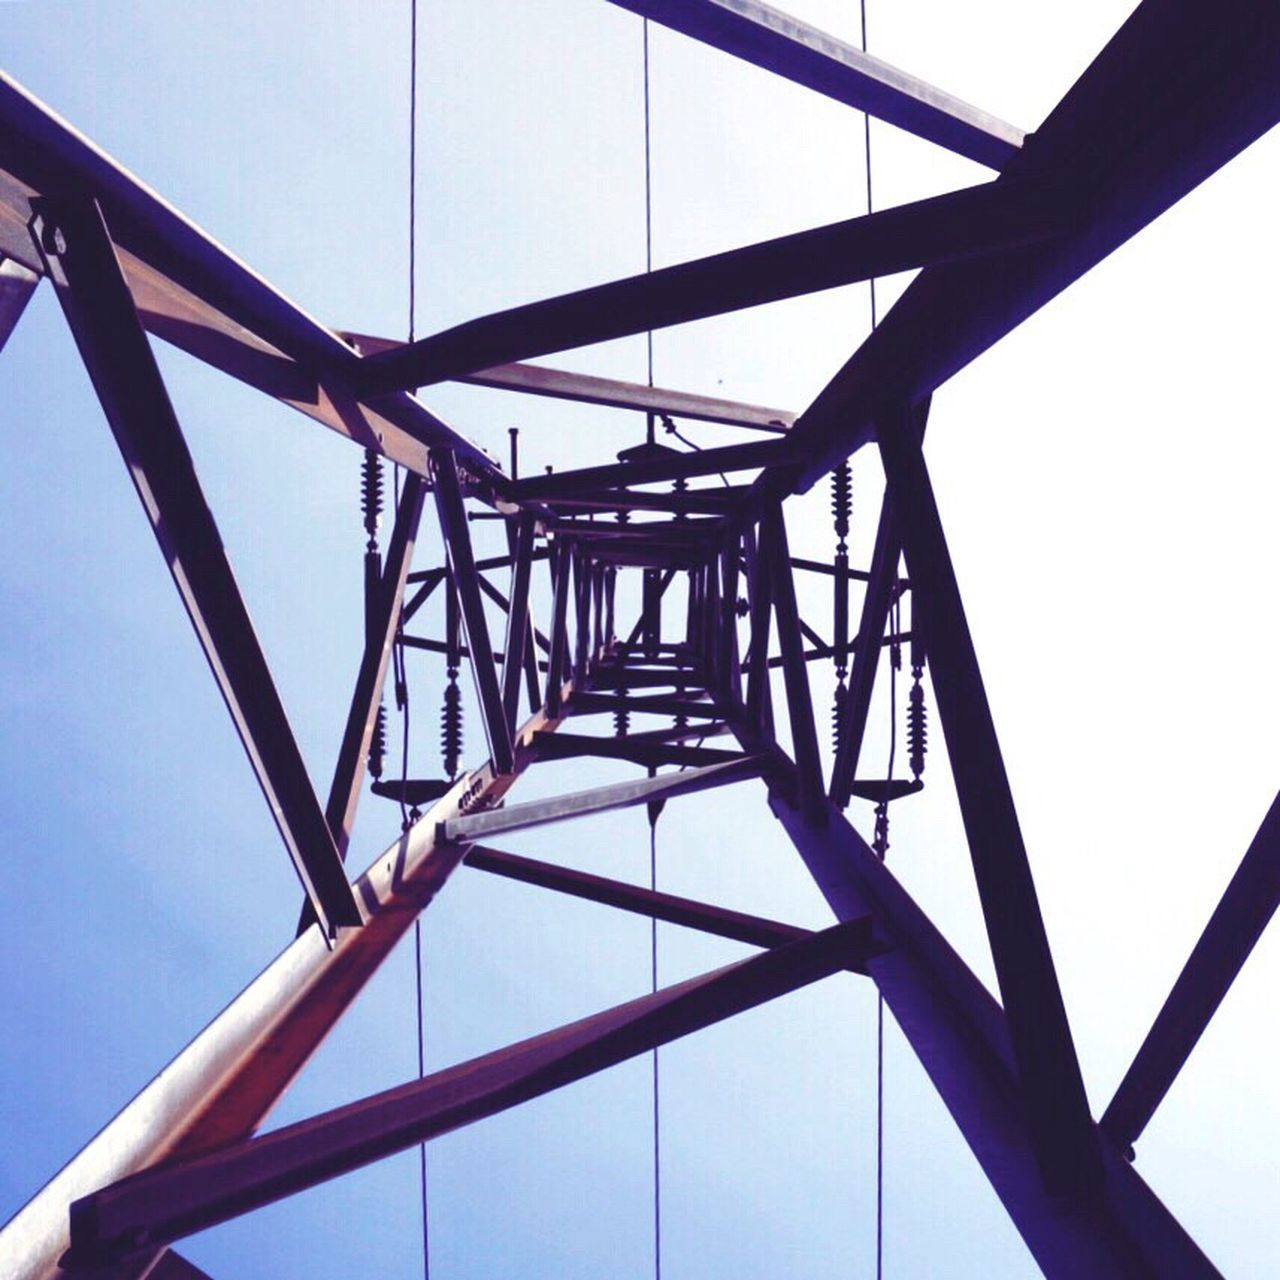 metal, low angle view, connection, day, built structure, no people, cable, outdoors, architecture, sky, girder